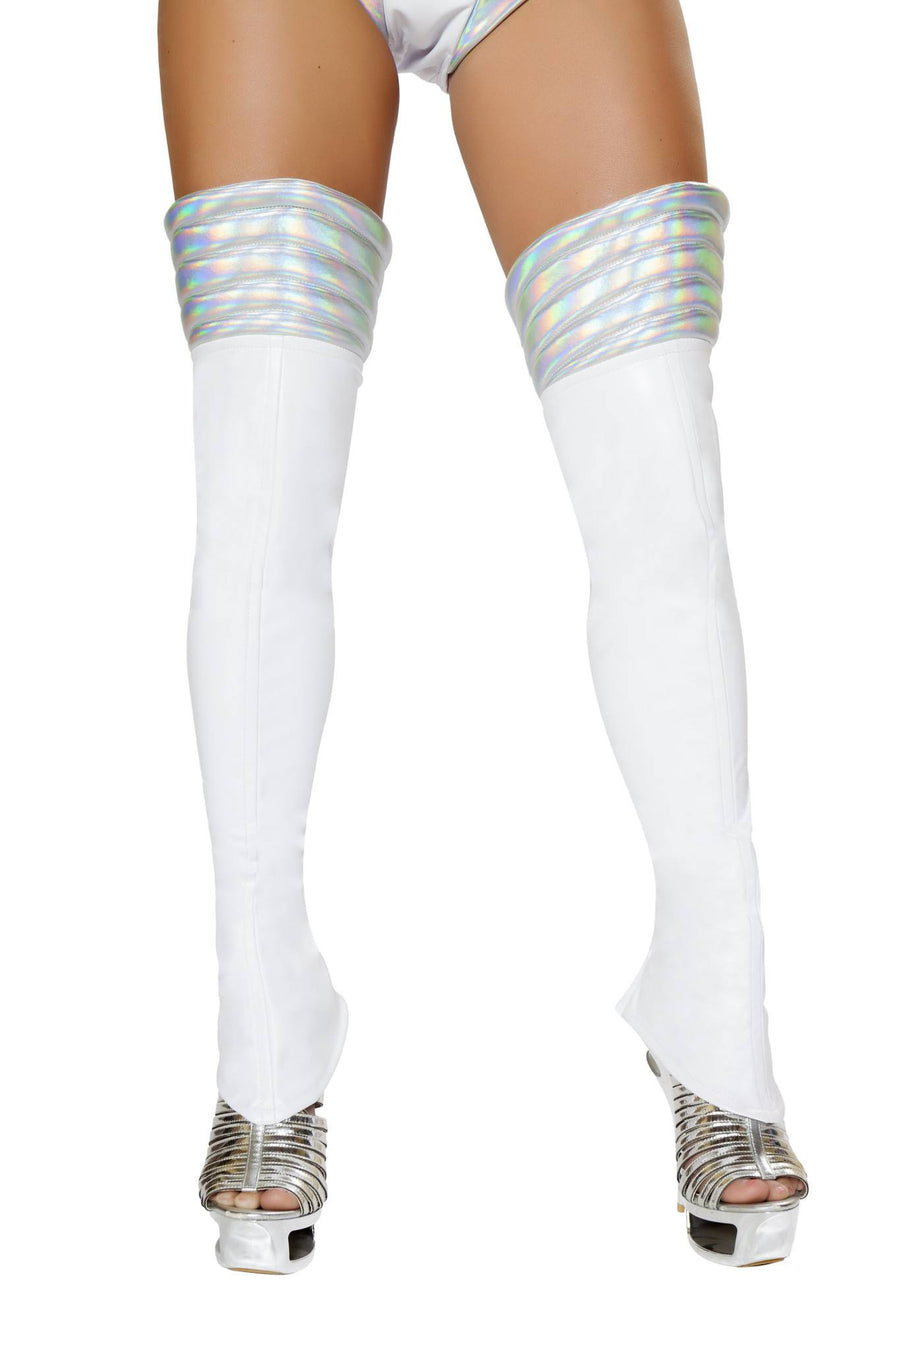 White Space Girl Leggings - Roma Costume, Rave Costumes - YourLamode